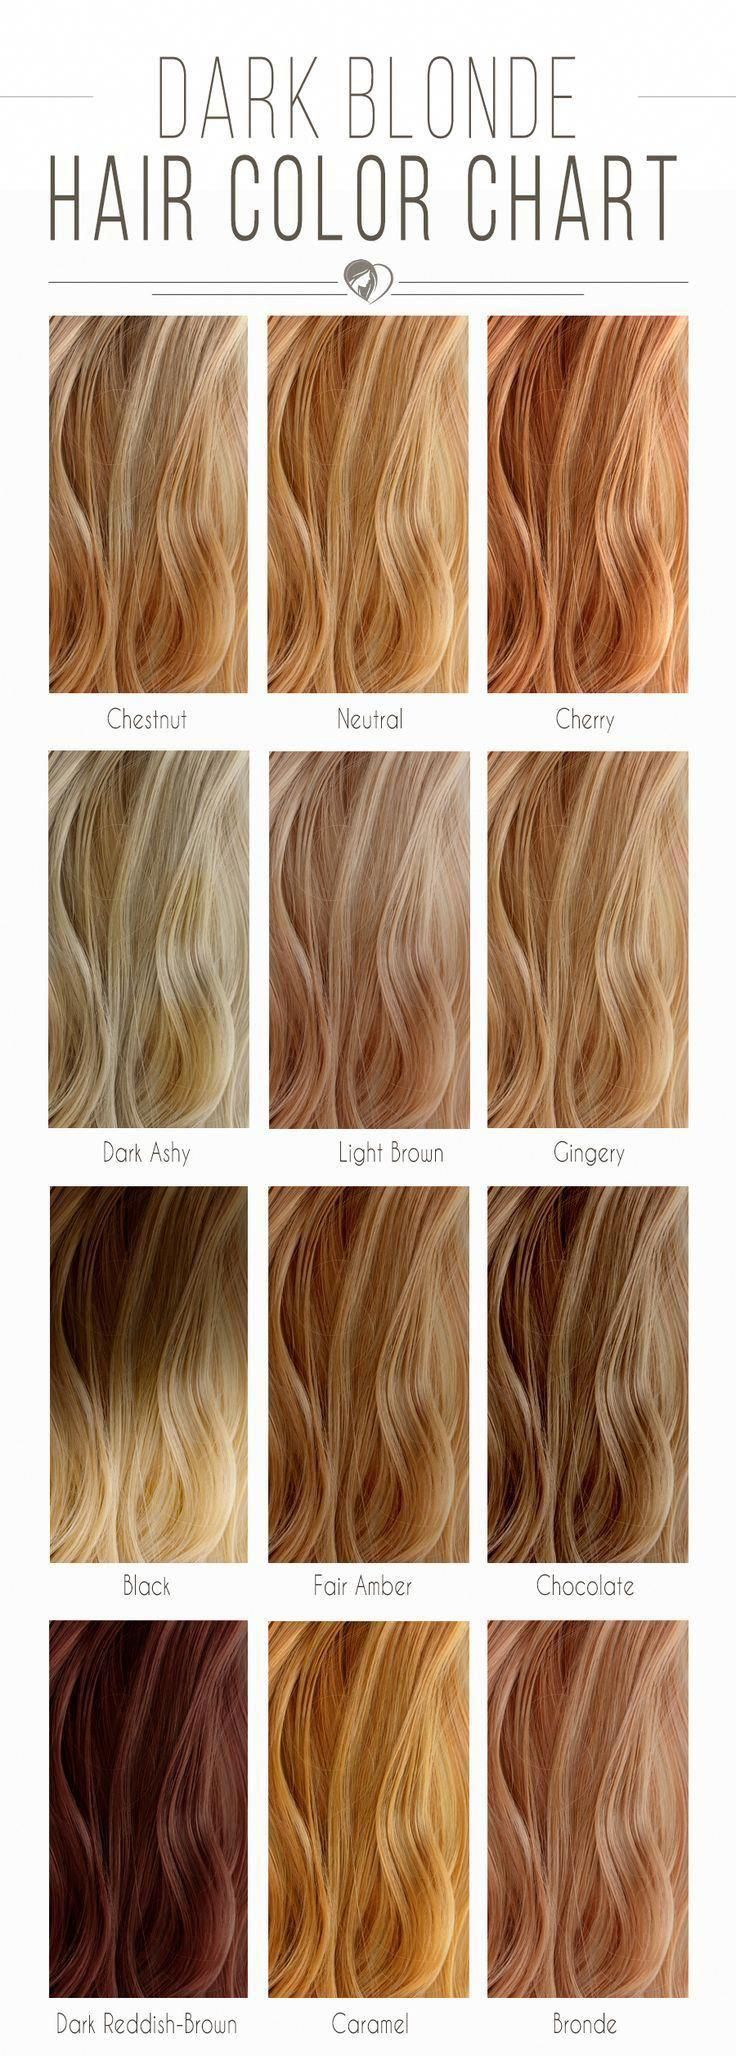 Keune Tinta Color Shade Palette 2015 Love Everything About This Company Hair Color Chart Hair Color Shades Hair Color